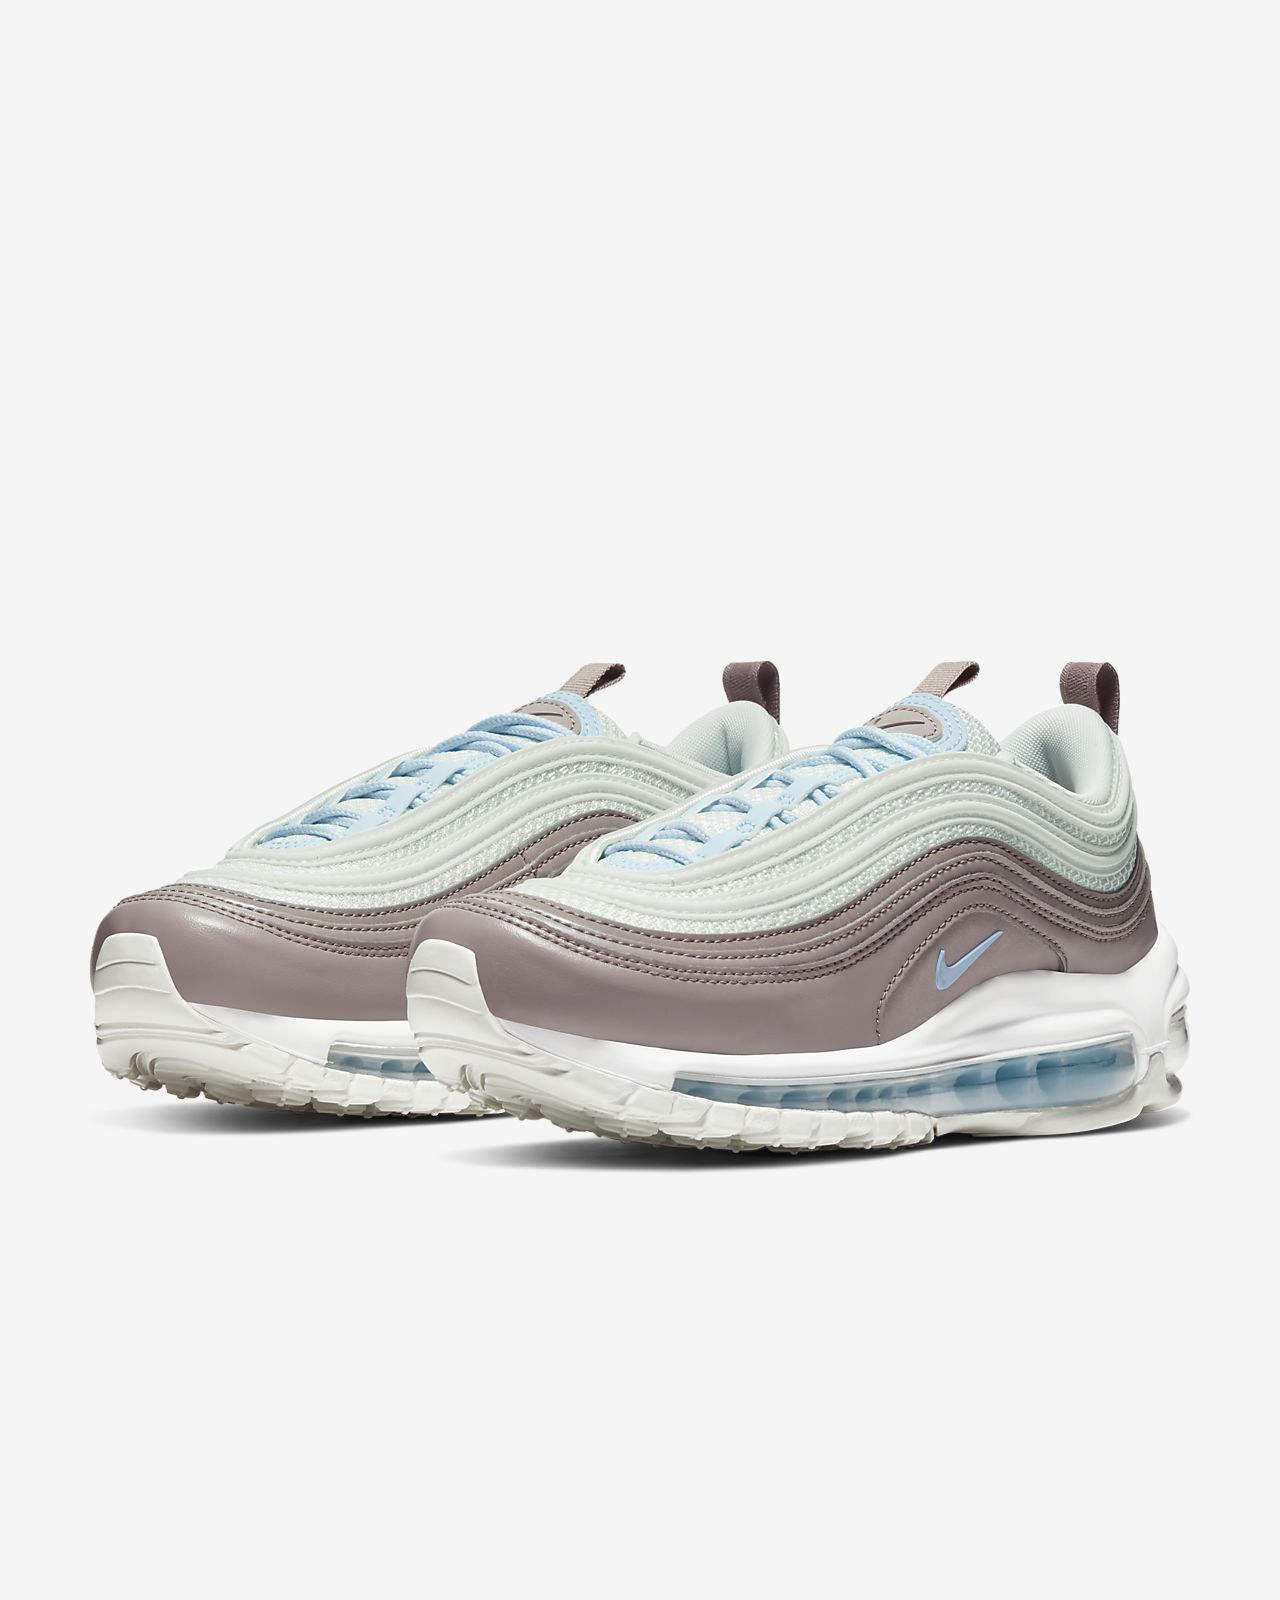 nike air 97 gold damen Nike galerie zentgraf.at